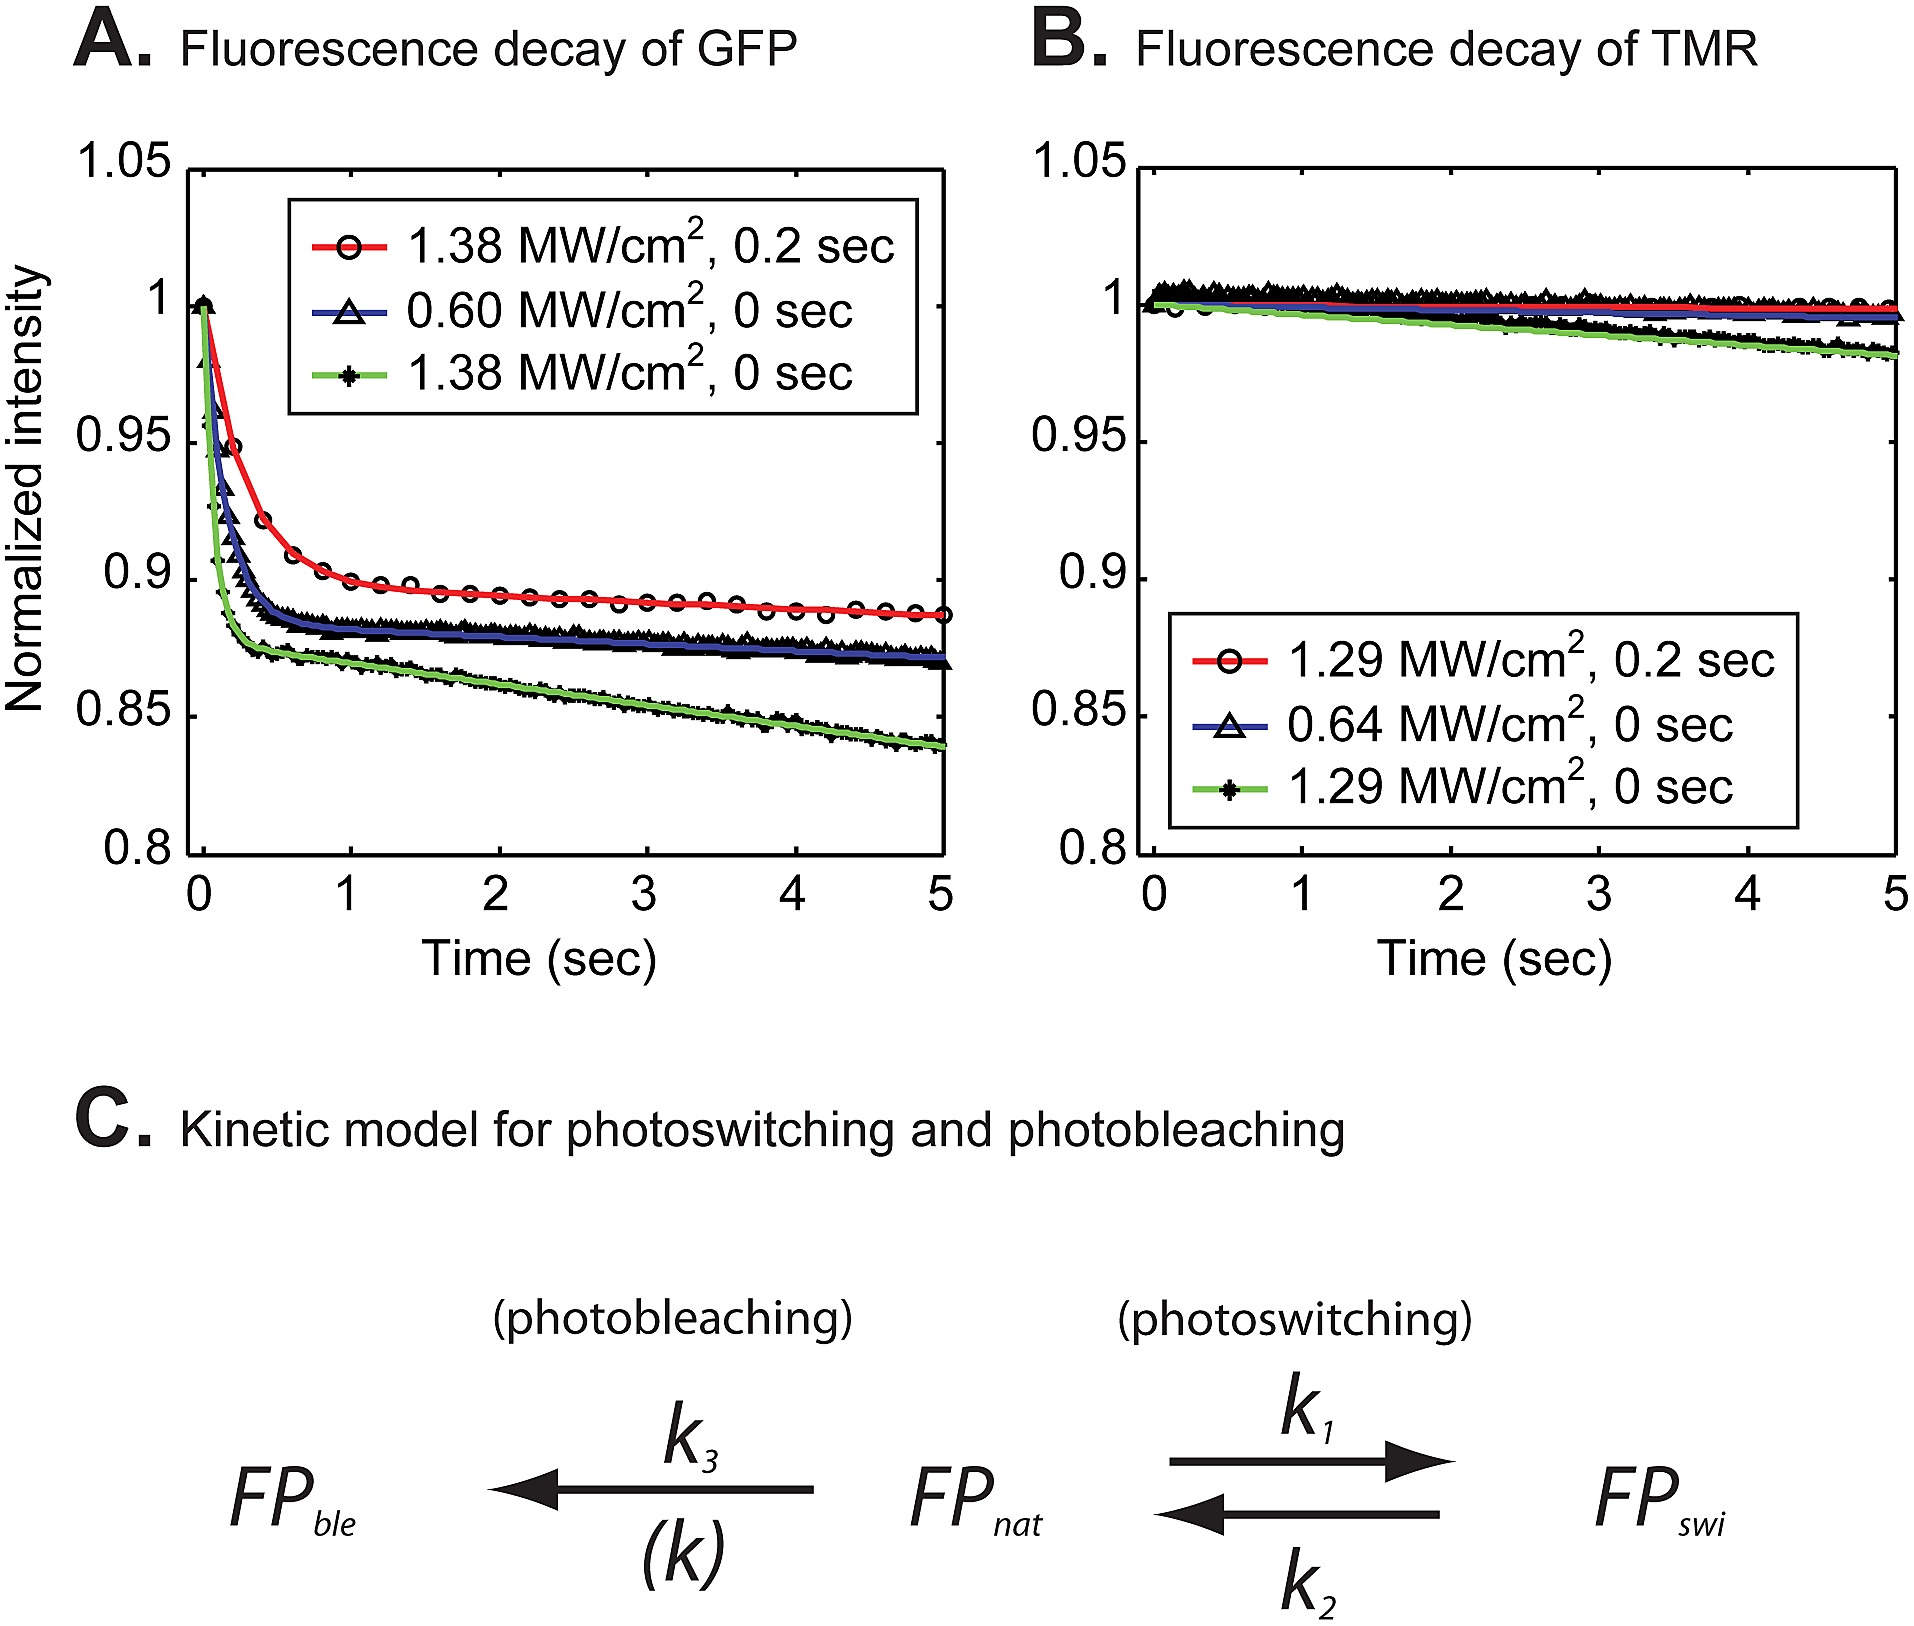 Fluorescent decay curves of H2B-GFP (A) and H2B-Halo-TMR (B) during